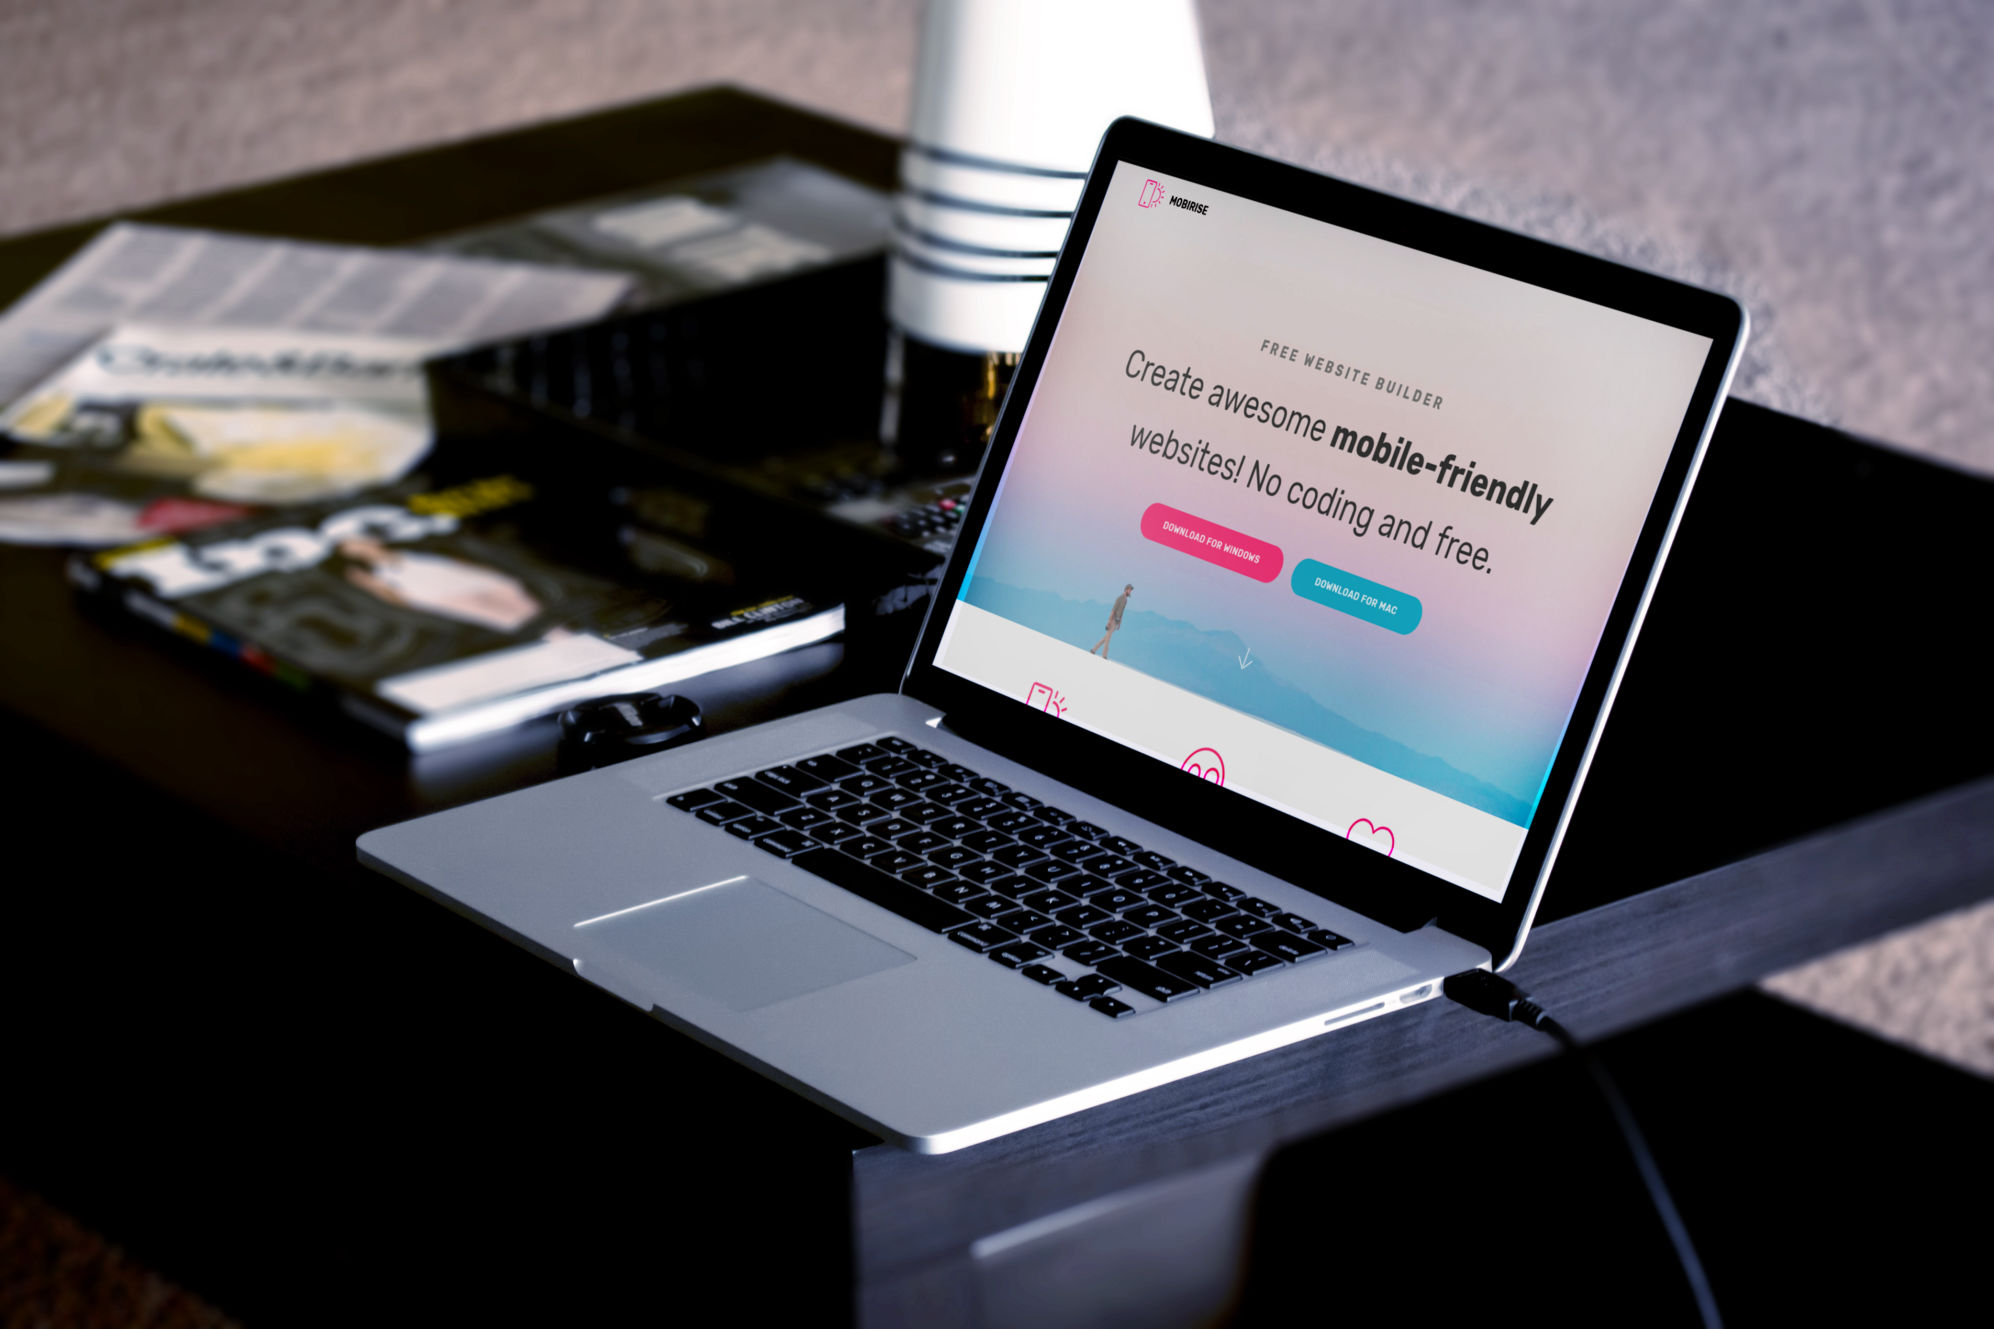 Finest Web Design Affordable Services to Offer More